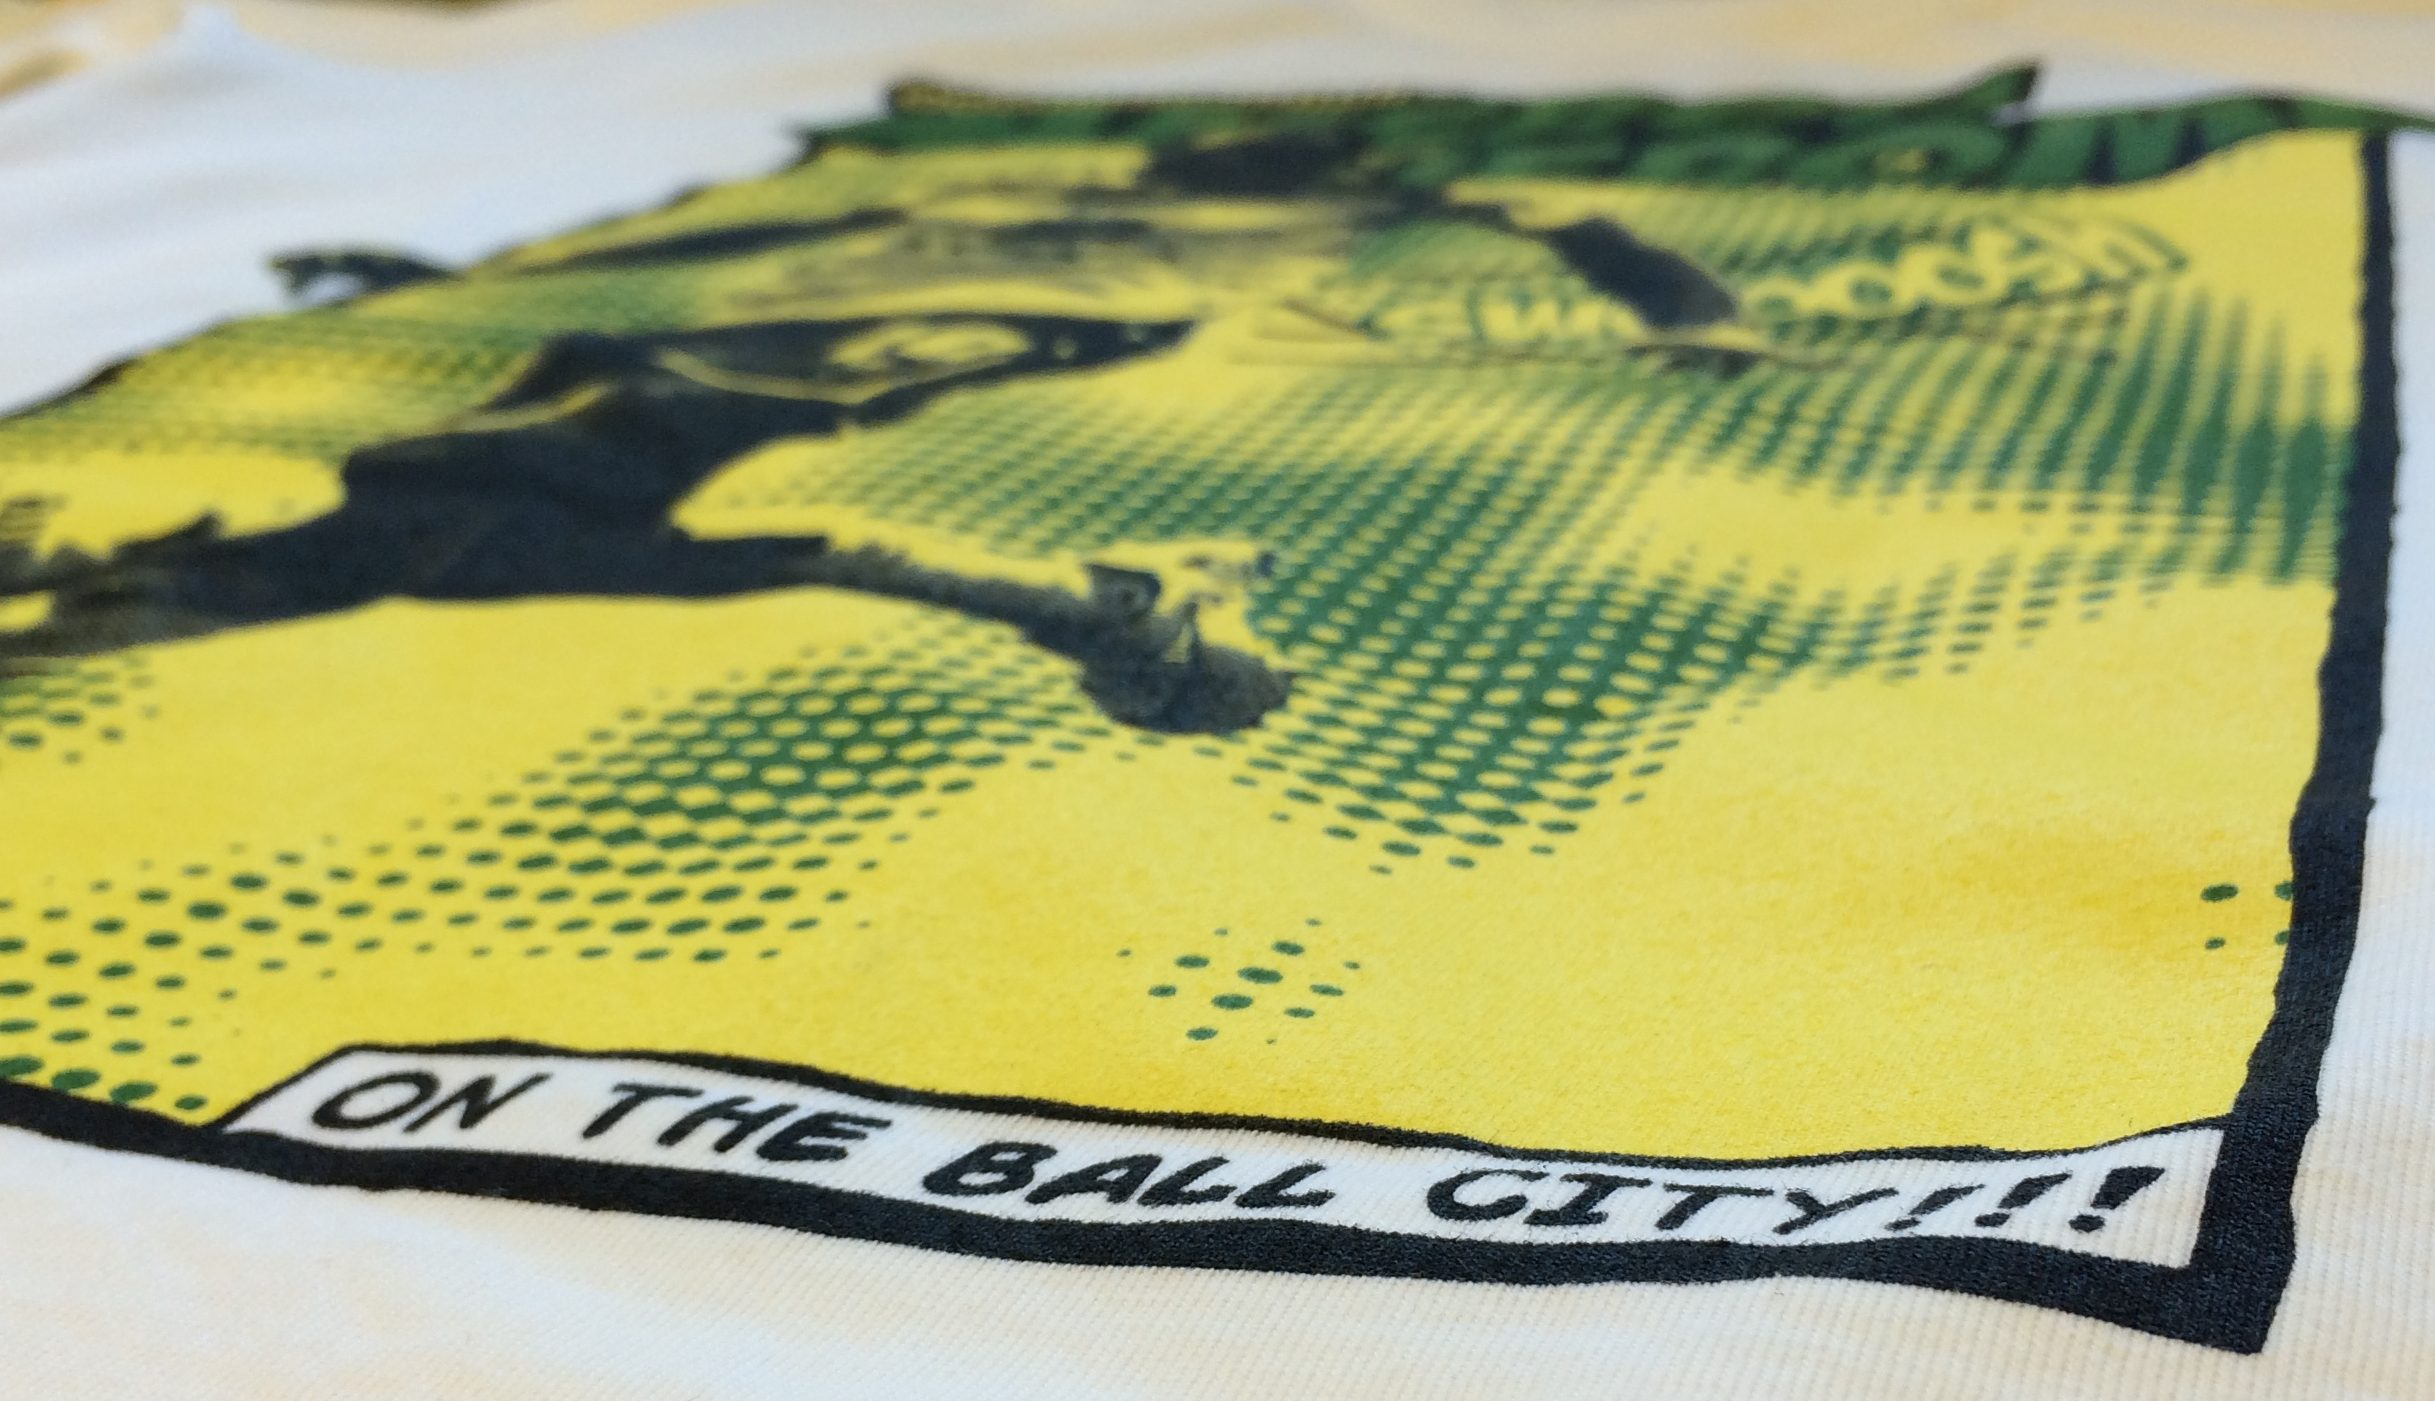 Norwich City Football Club Merchandise